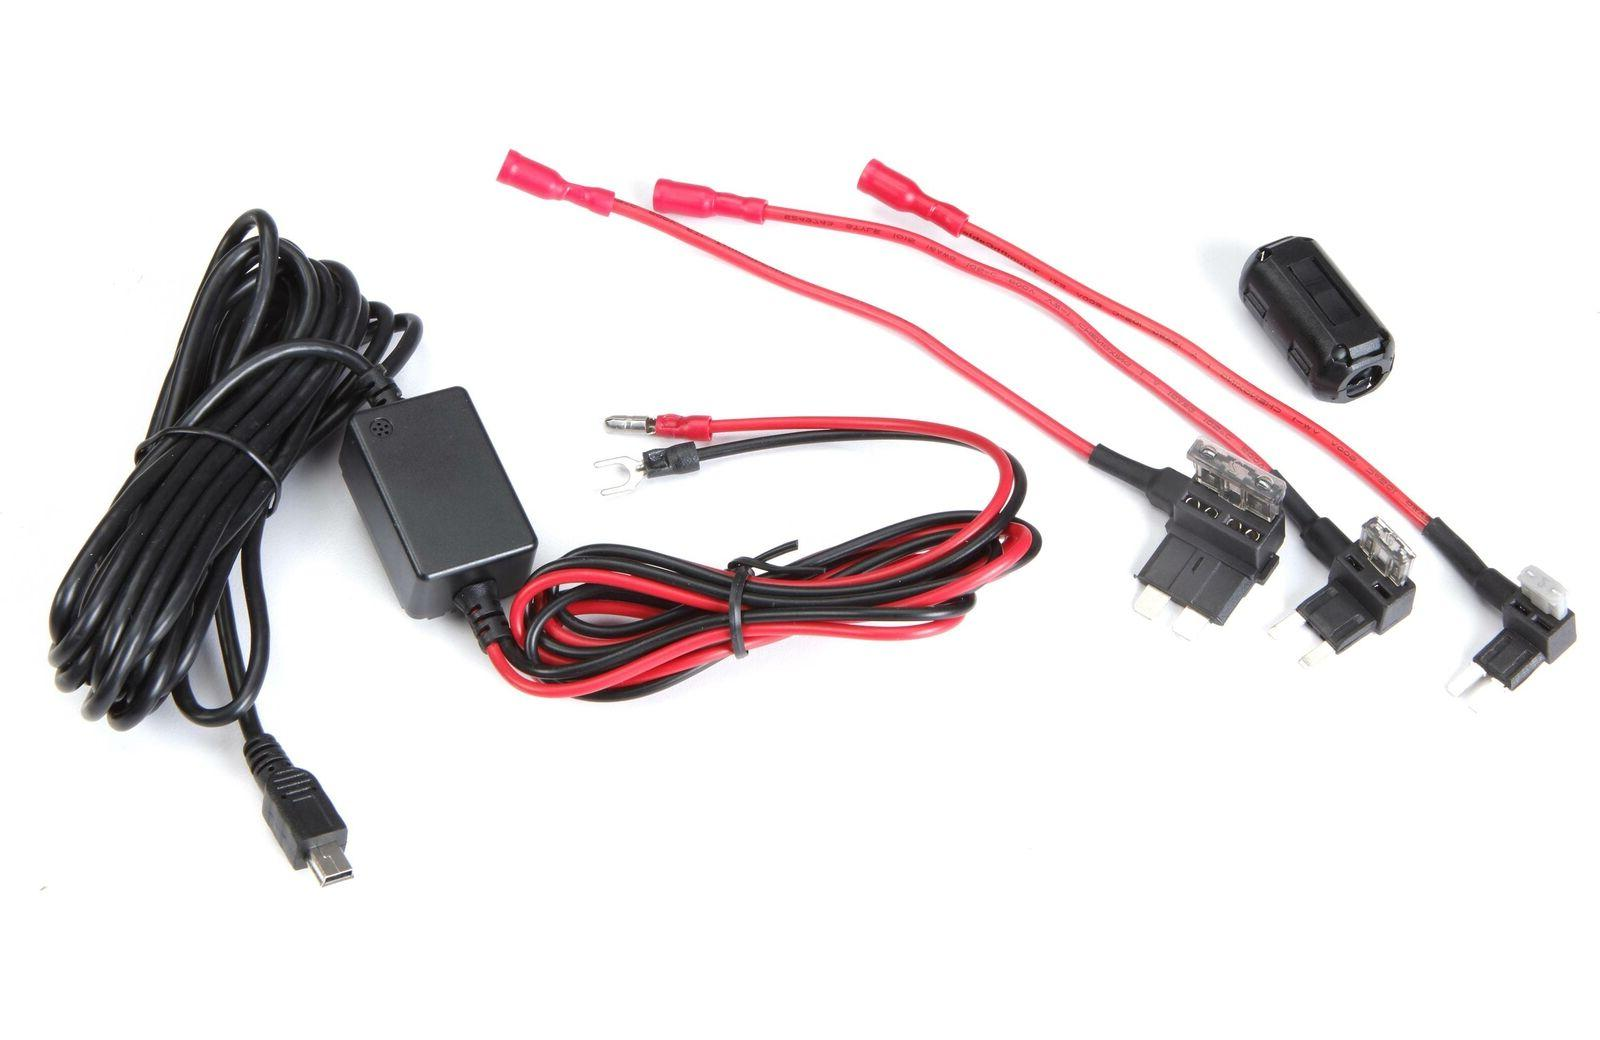 Kenwood for cams CADR1030